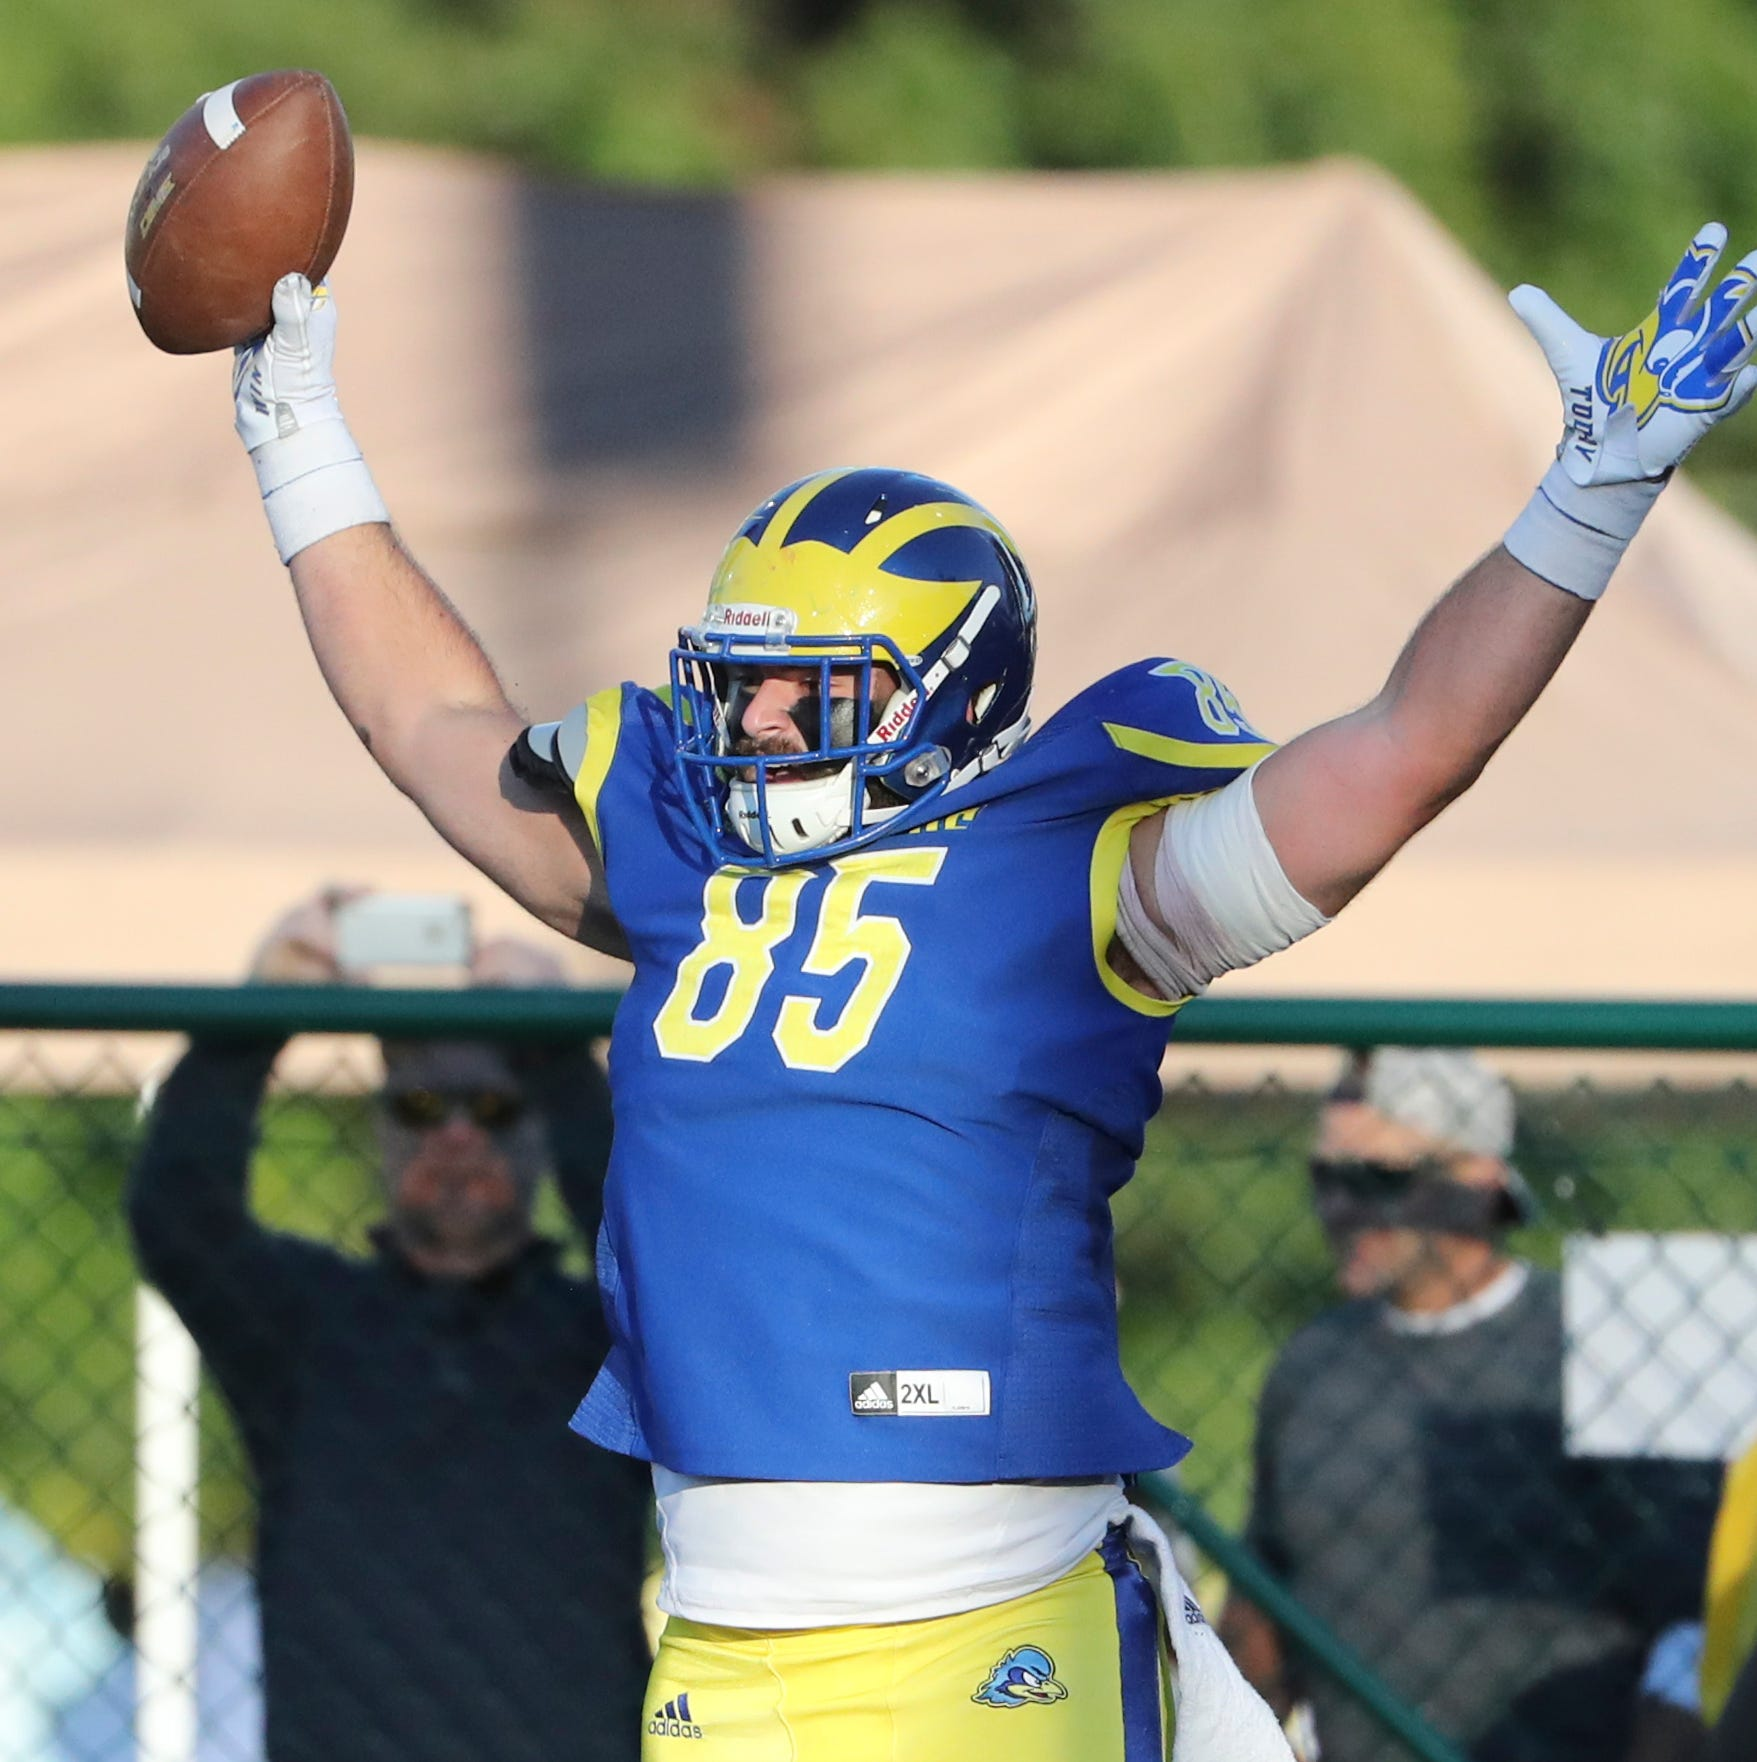 Delaware Blue Hens show 'heart and soul,' rally to upset No. 5-ranked Elon